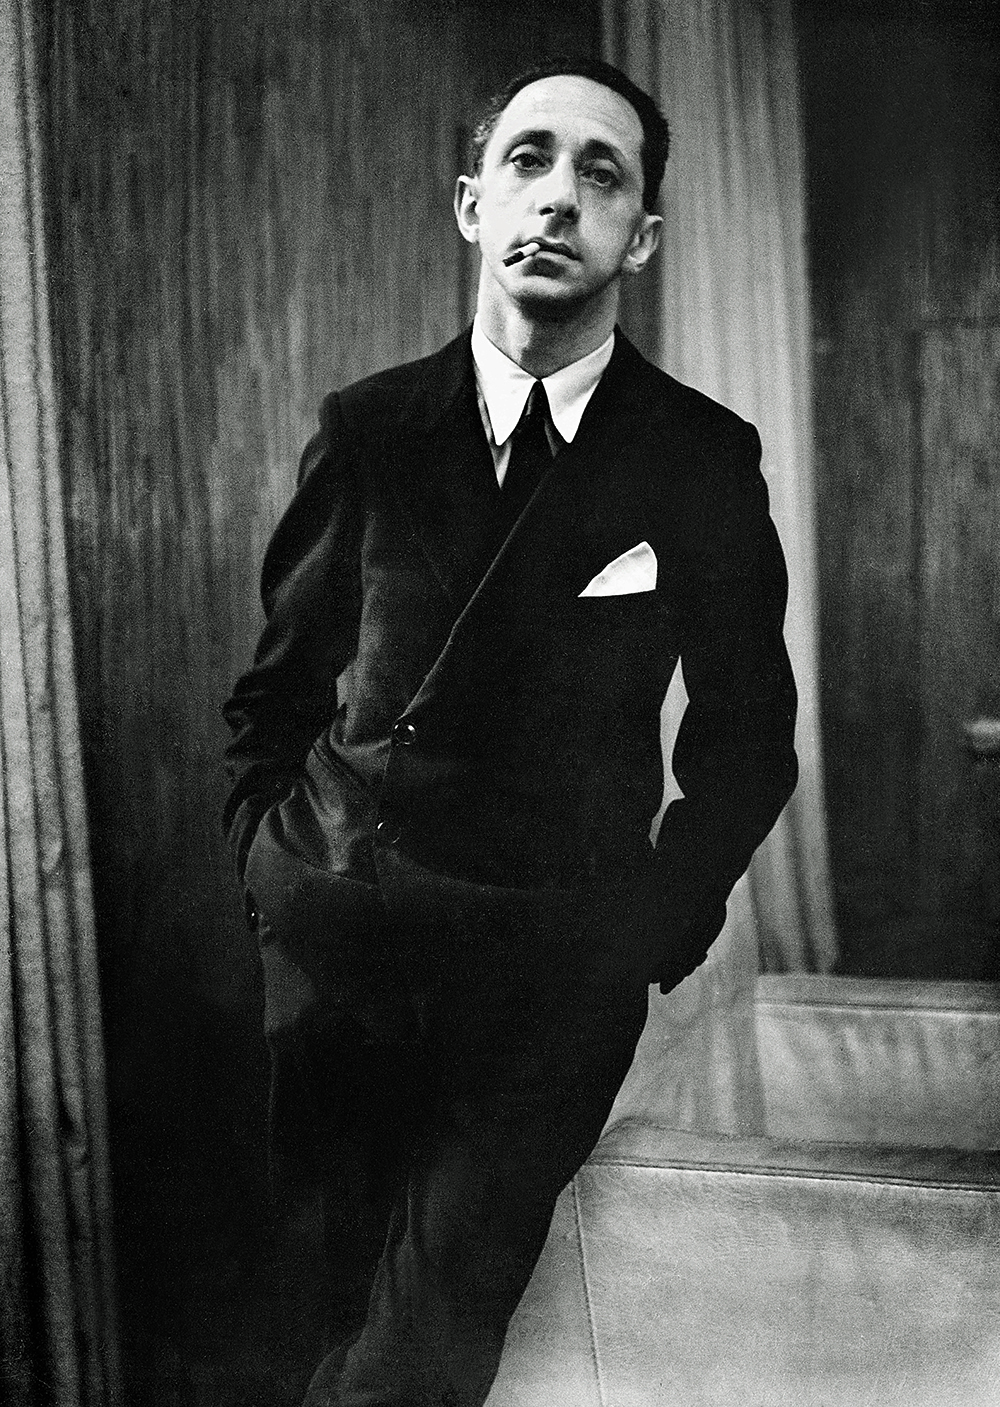 Photograph of Jean-Michel Frank by Rogi André, c. 1935.